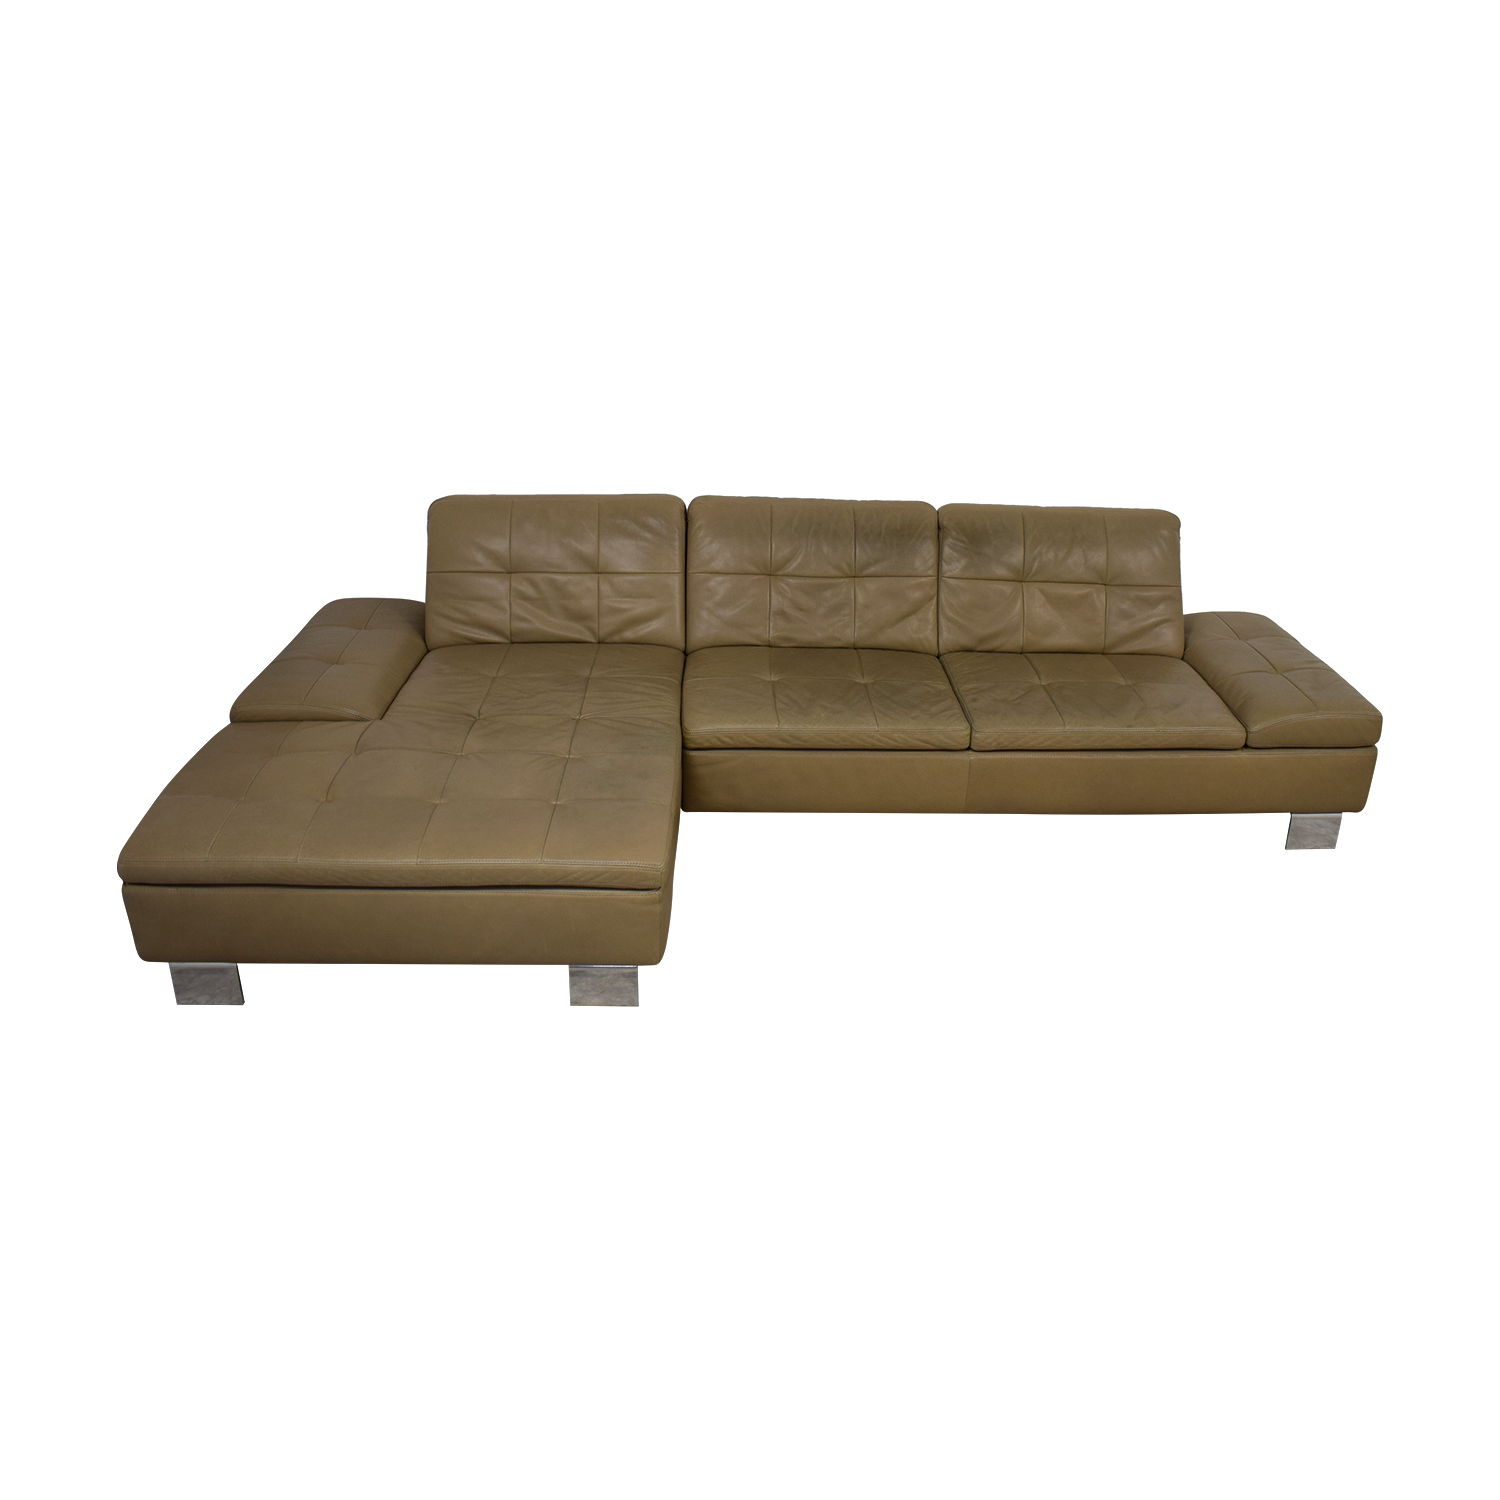 W. Schillig W. Schillig Contemporary Sectional Sofa in Natural Leather coupon